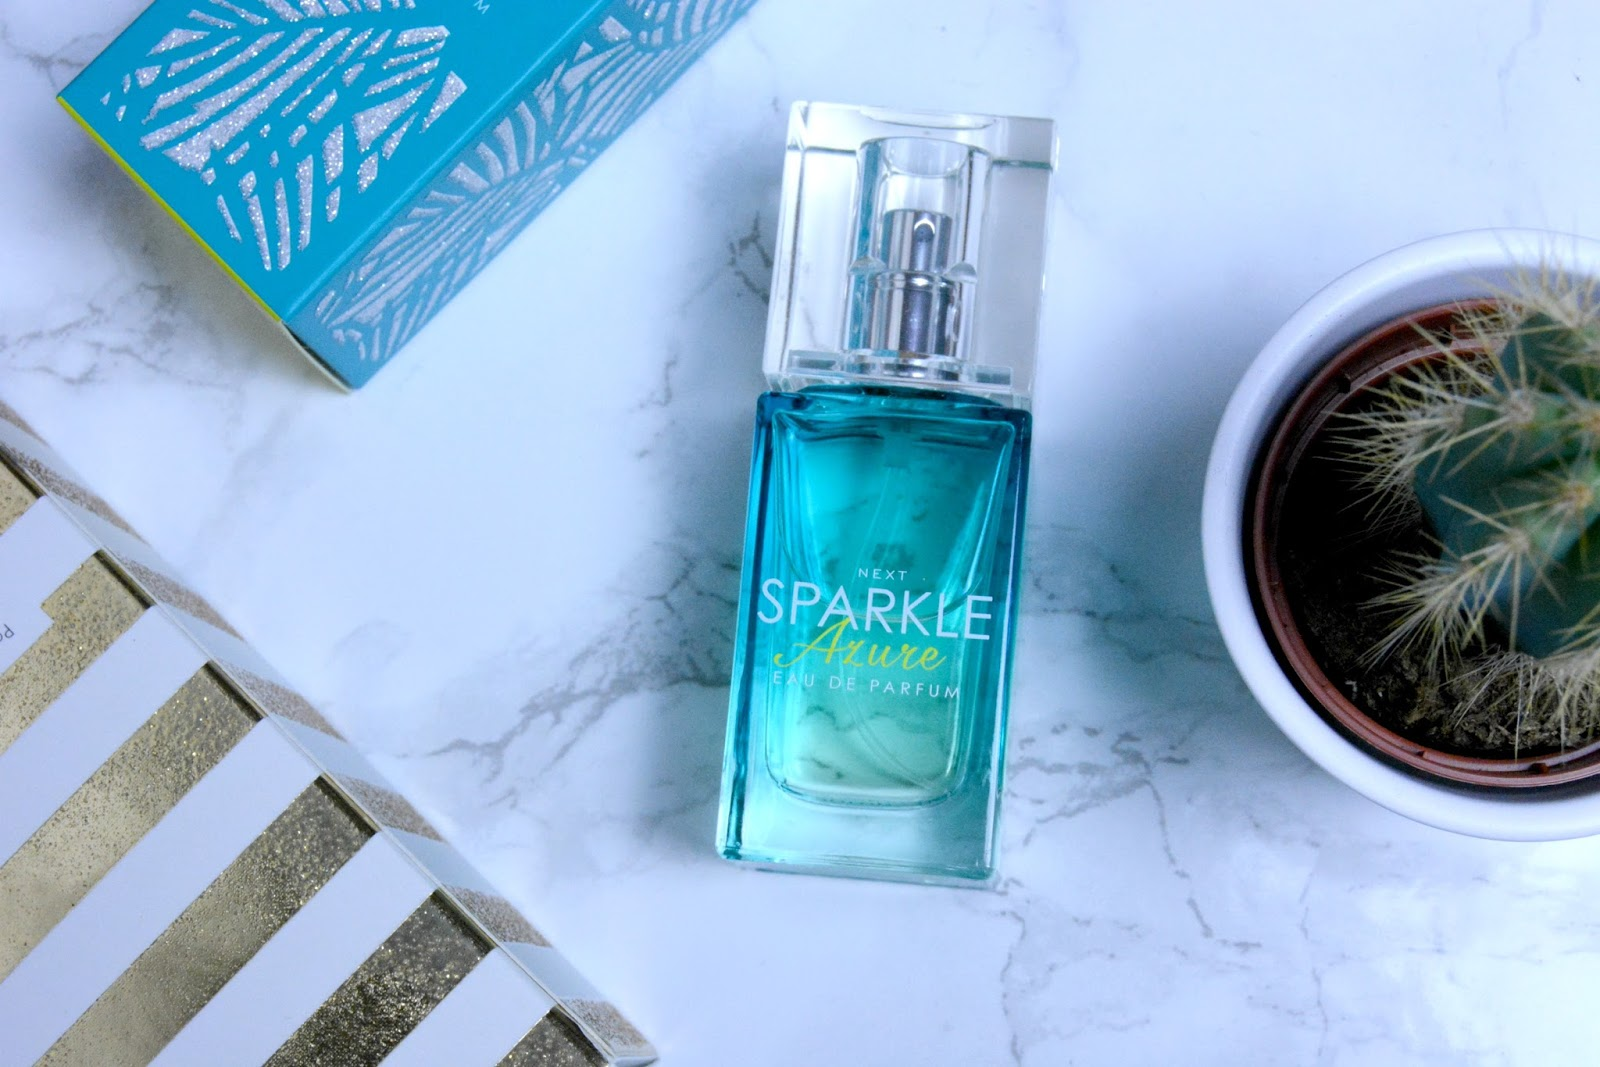 perfume, next, review, beauty, white musk, notes, floral, bright, holiday, aquatic, fresh